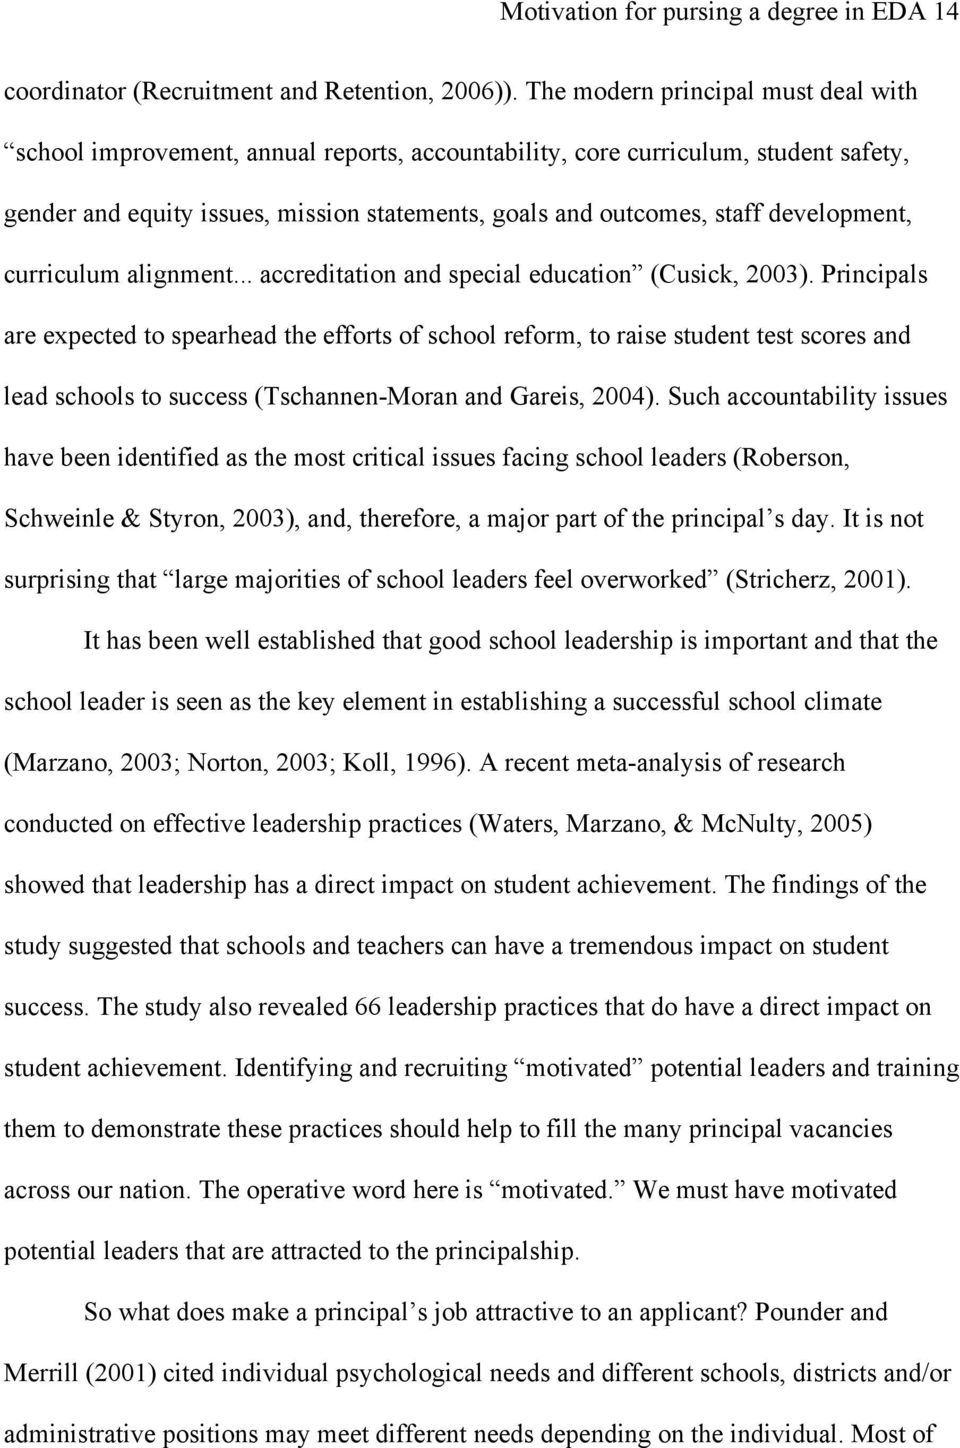 development, curriculum alignment... accreditation and special education (Cusick, 2003).